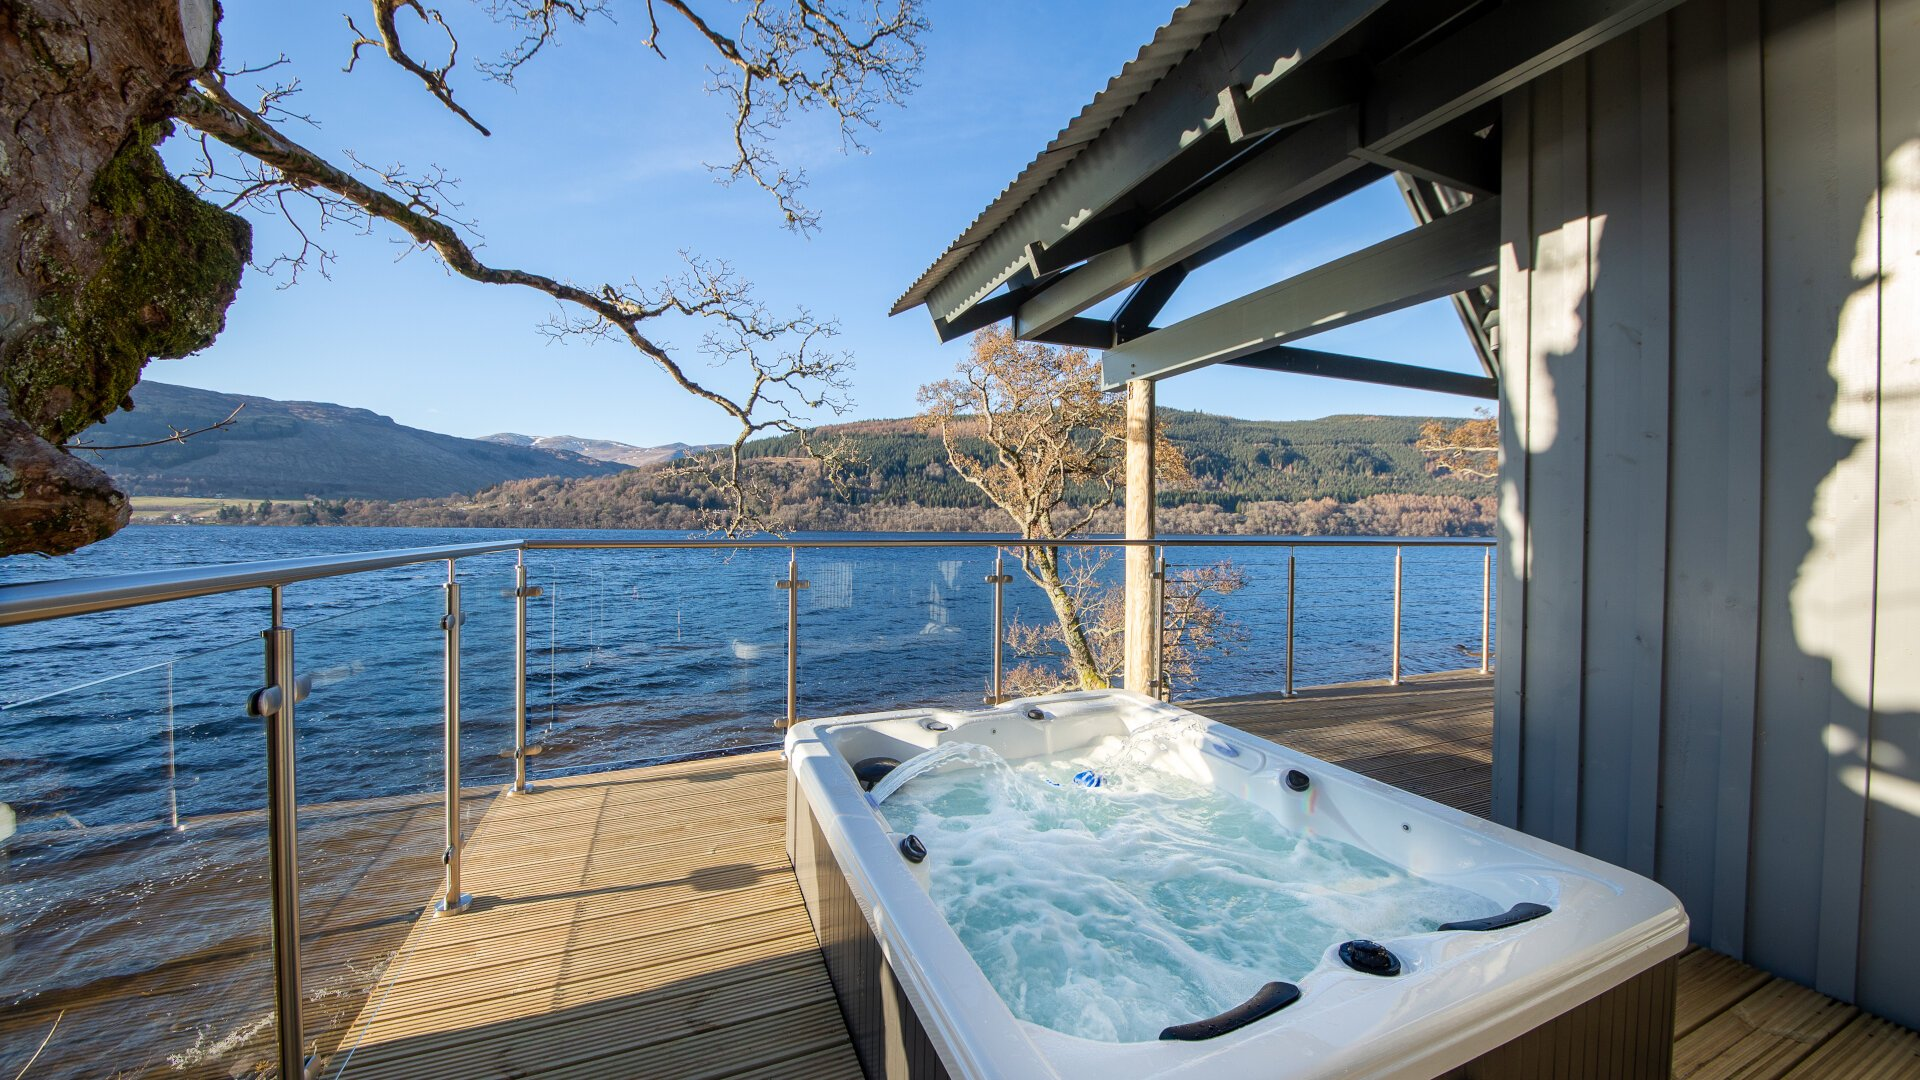 hot tub on decking overlooking loch tay from boathouse on stilits